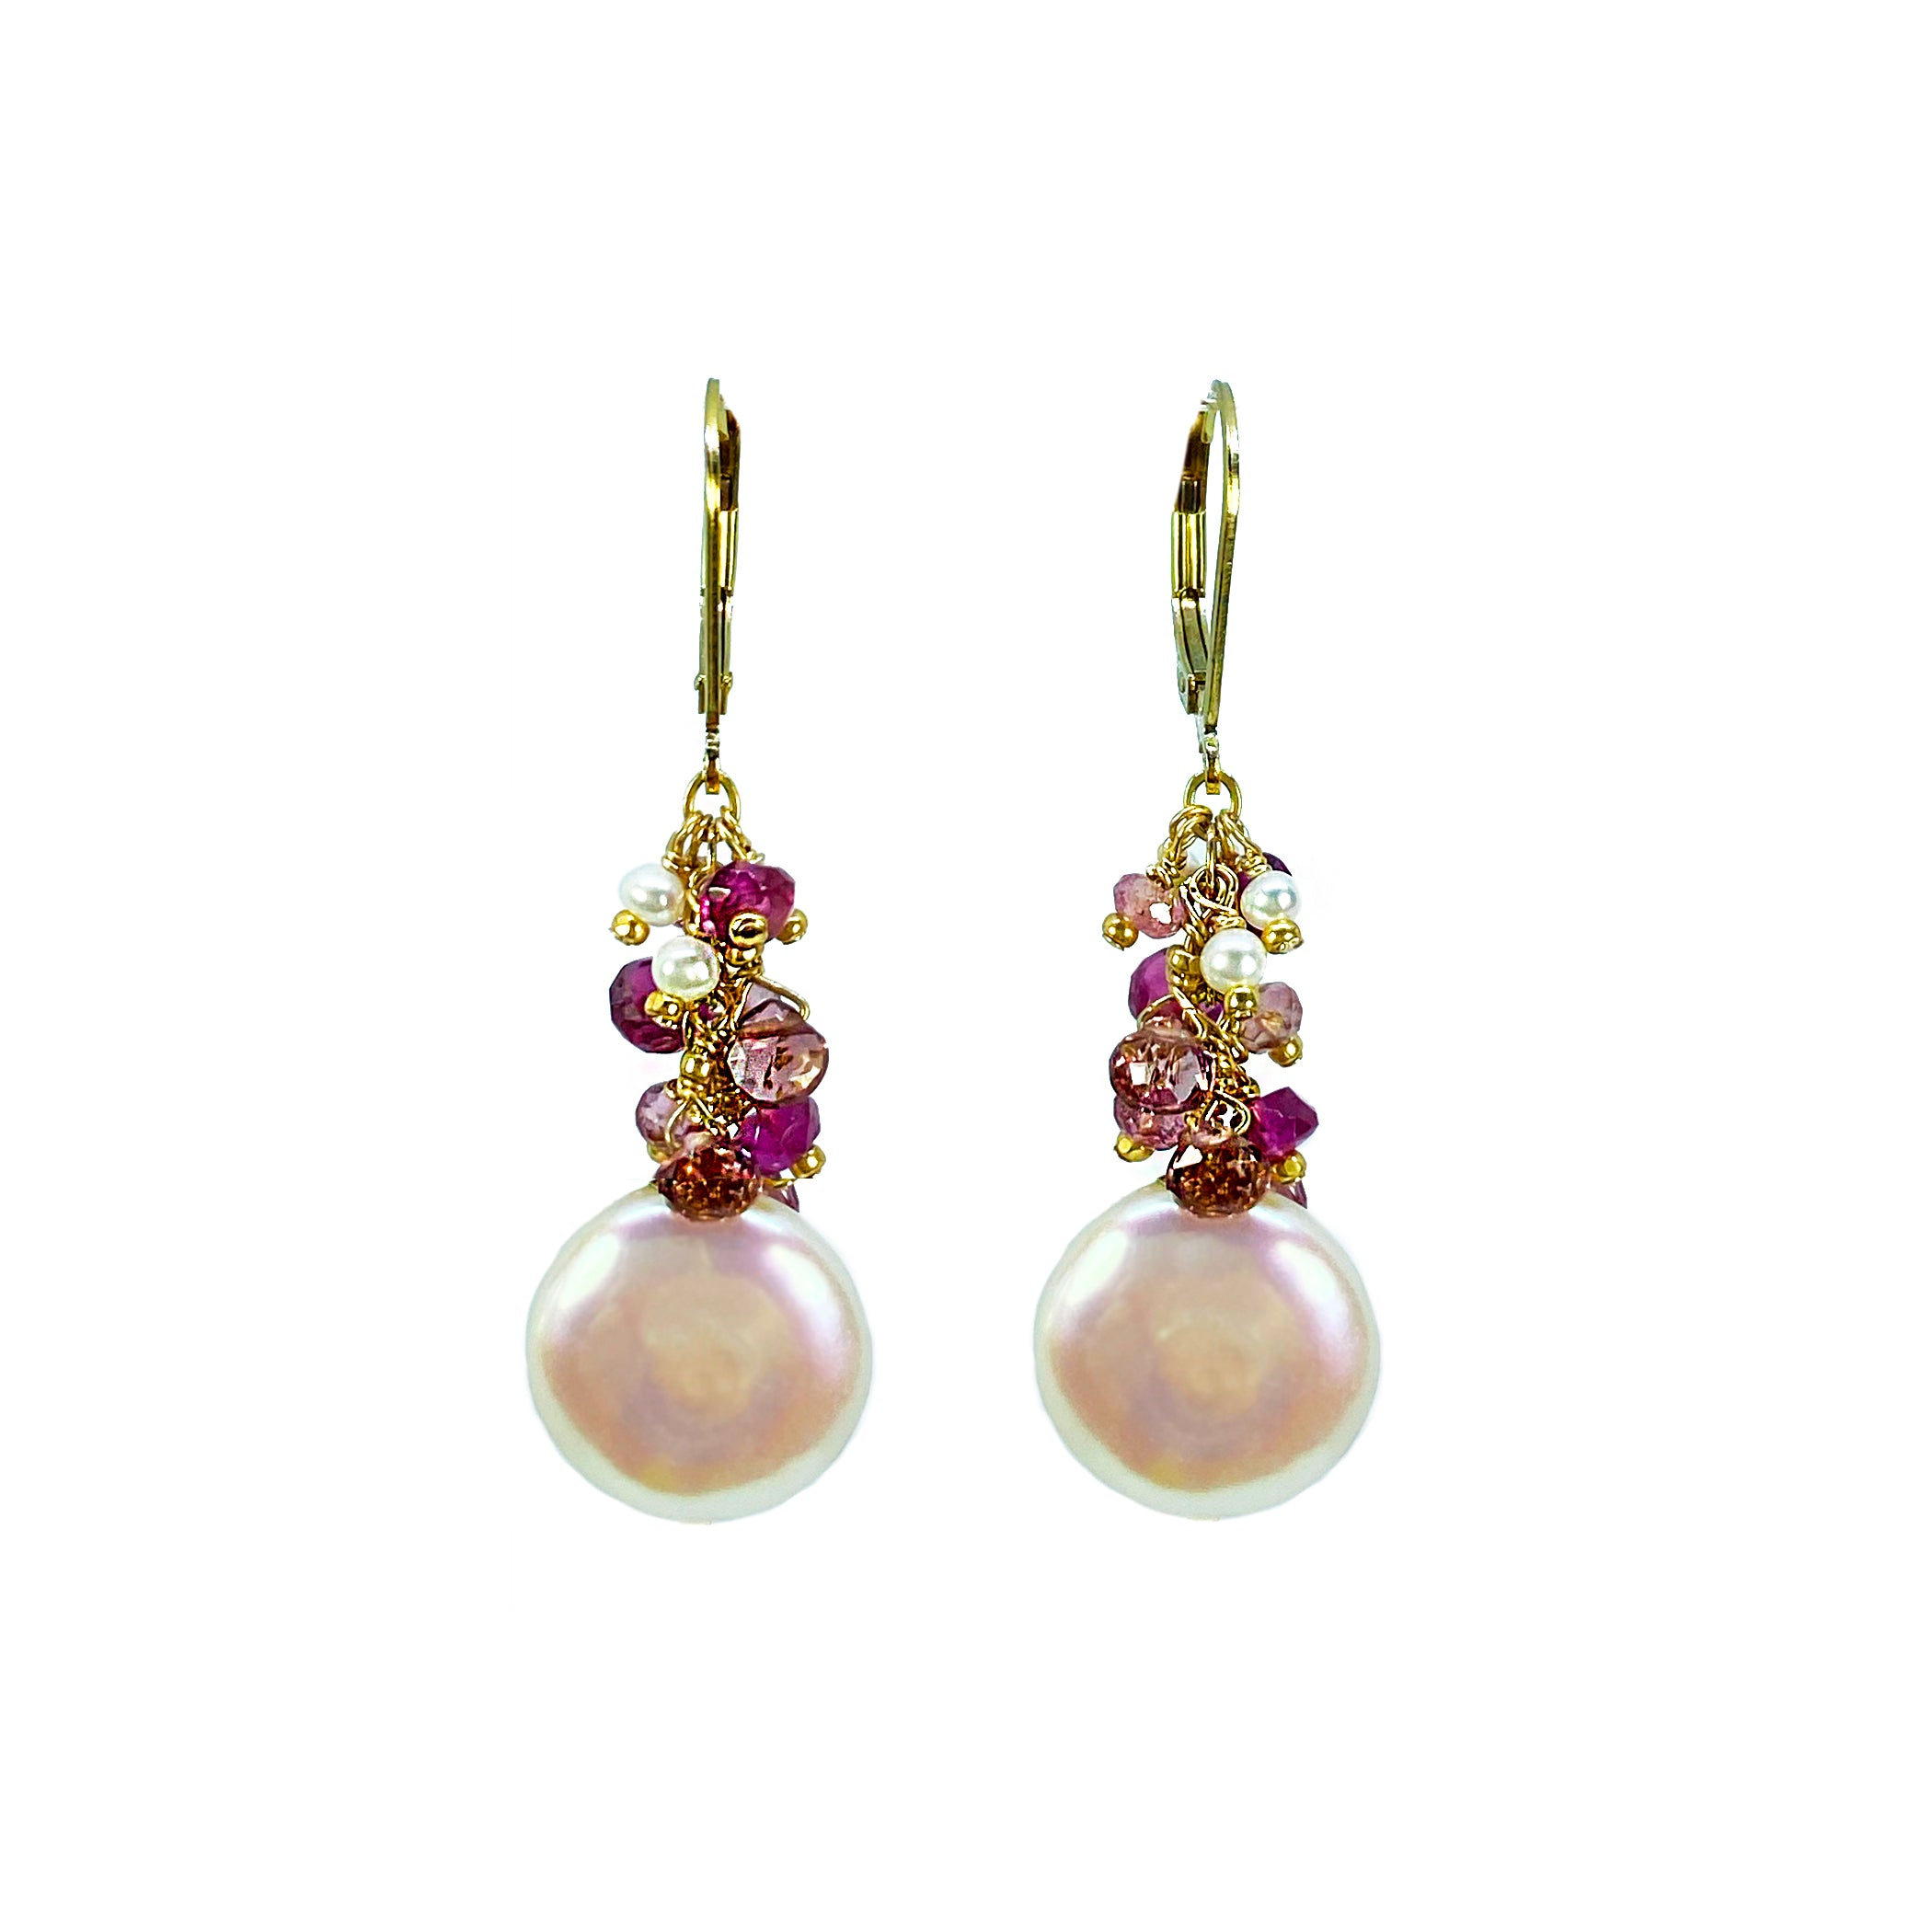 Coin Pearls, Pink Tourmaline & Pearls